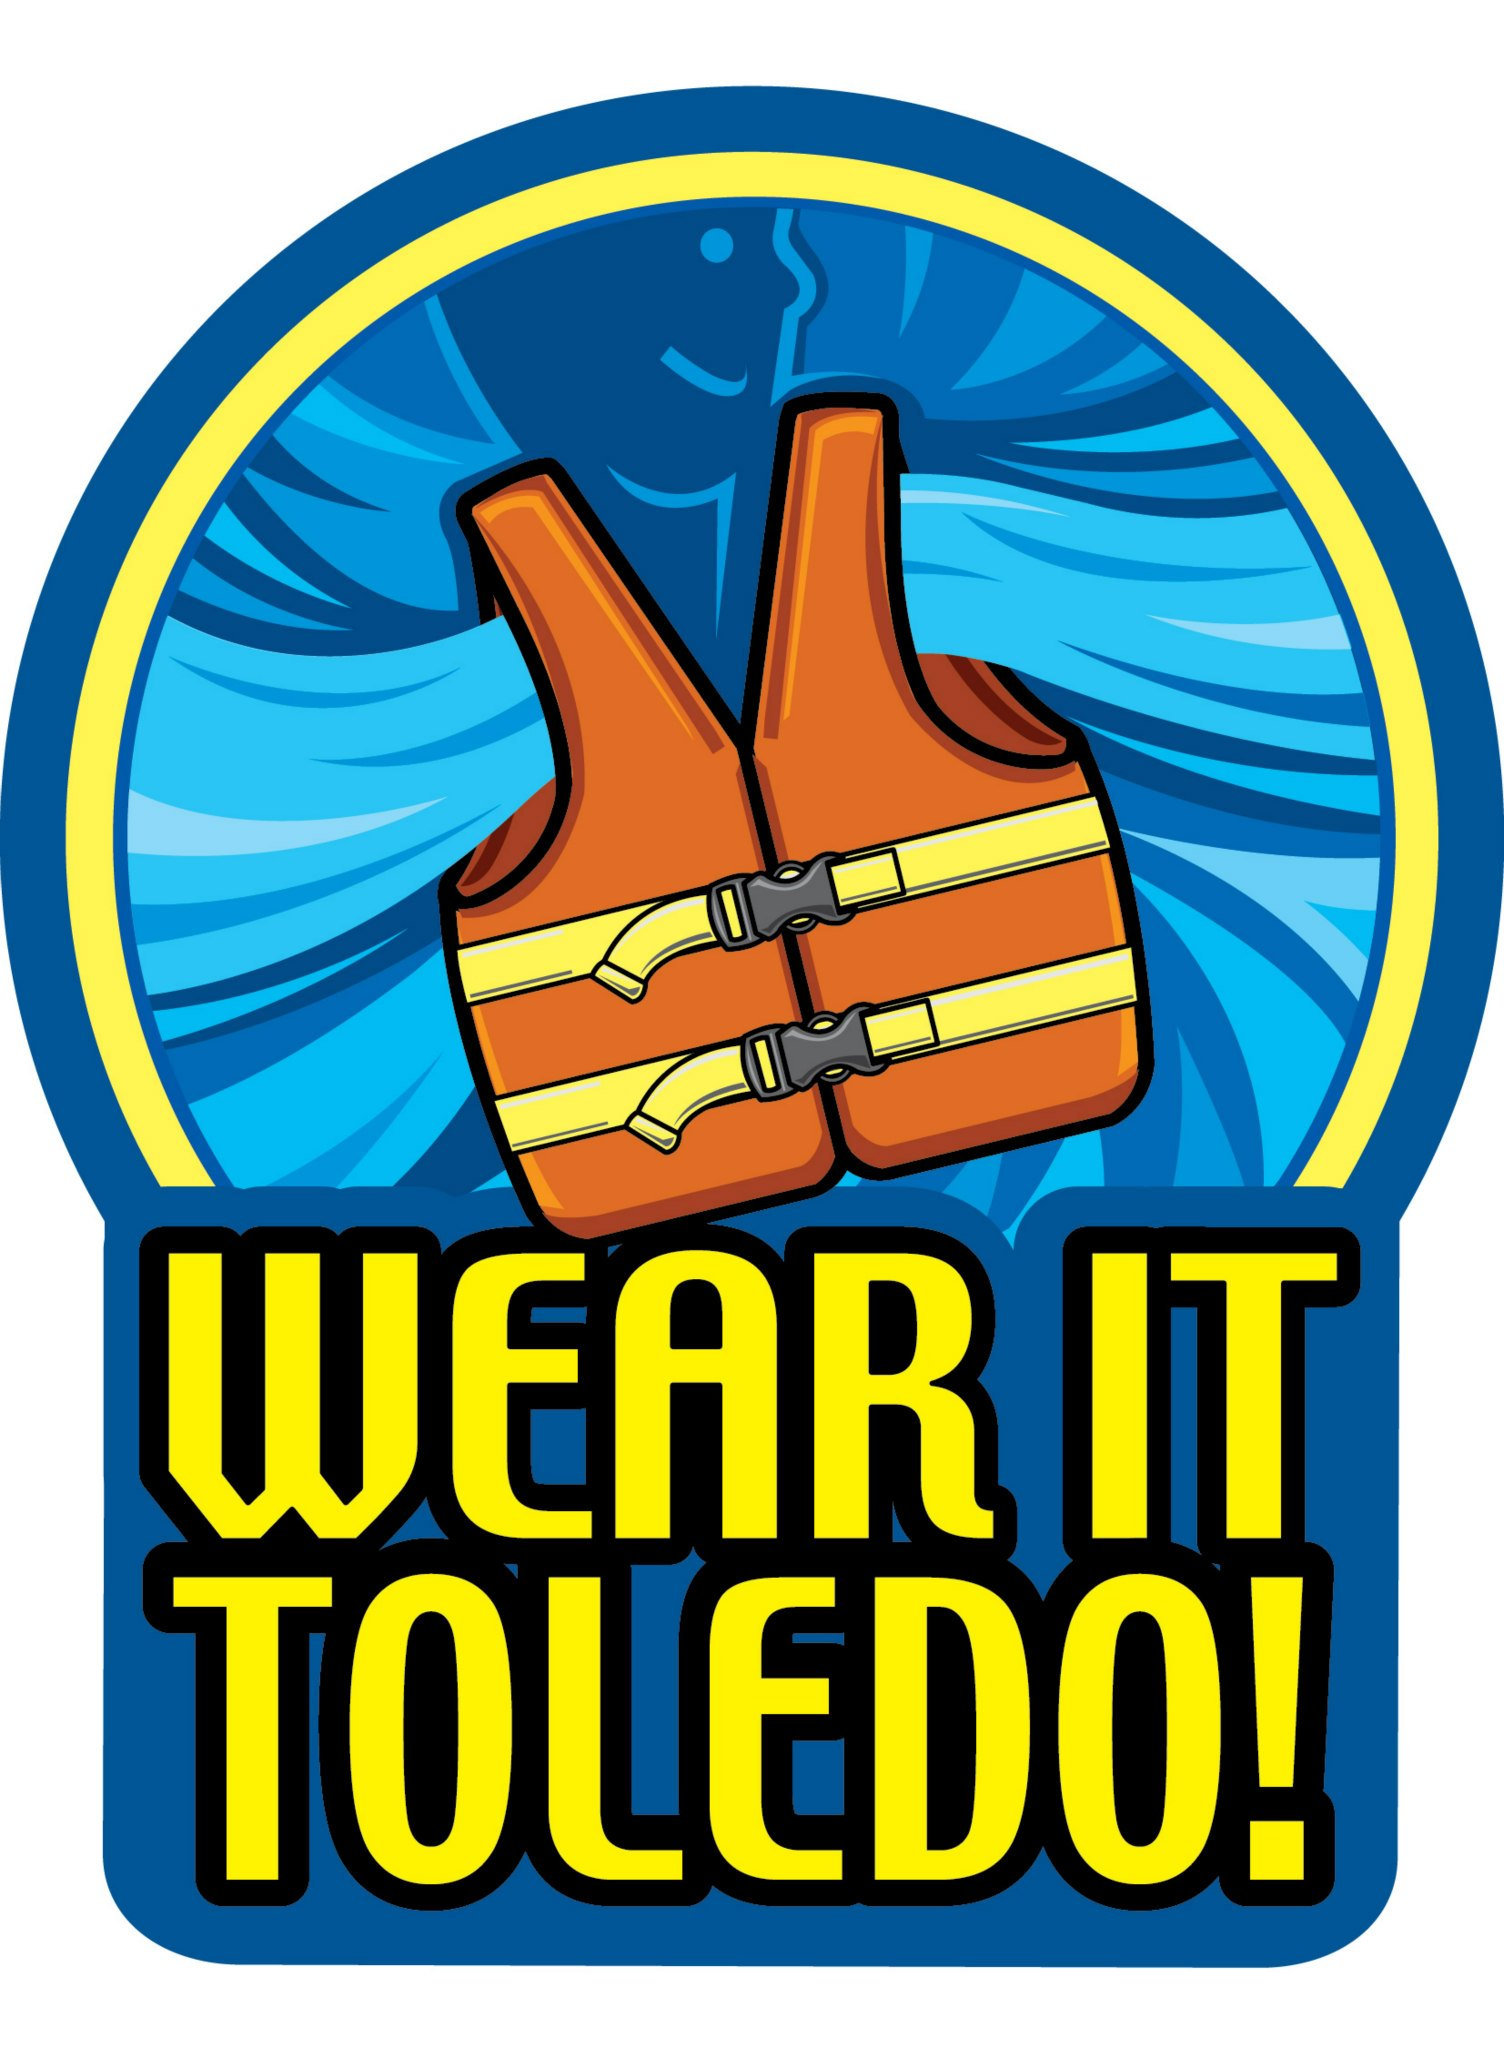 Water Safety Tip #7